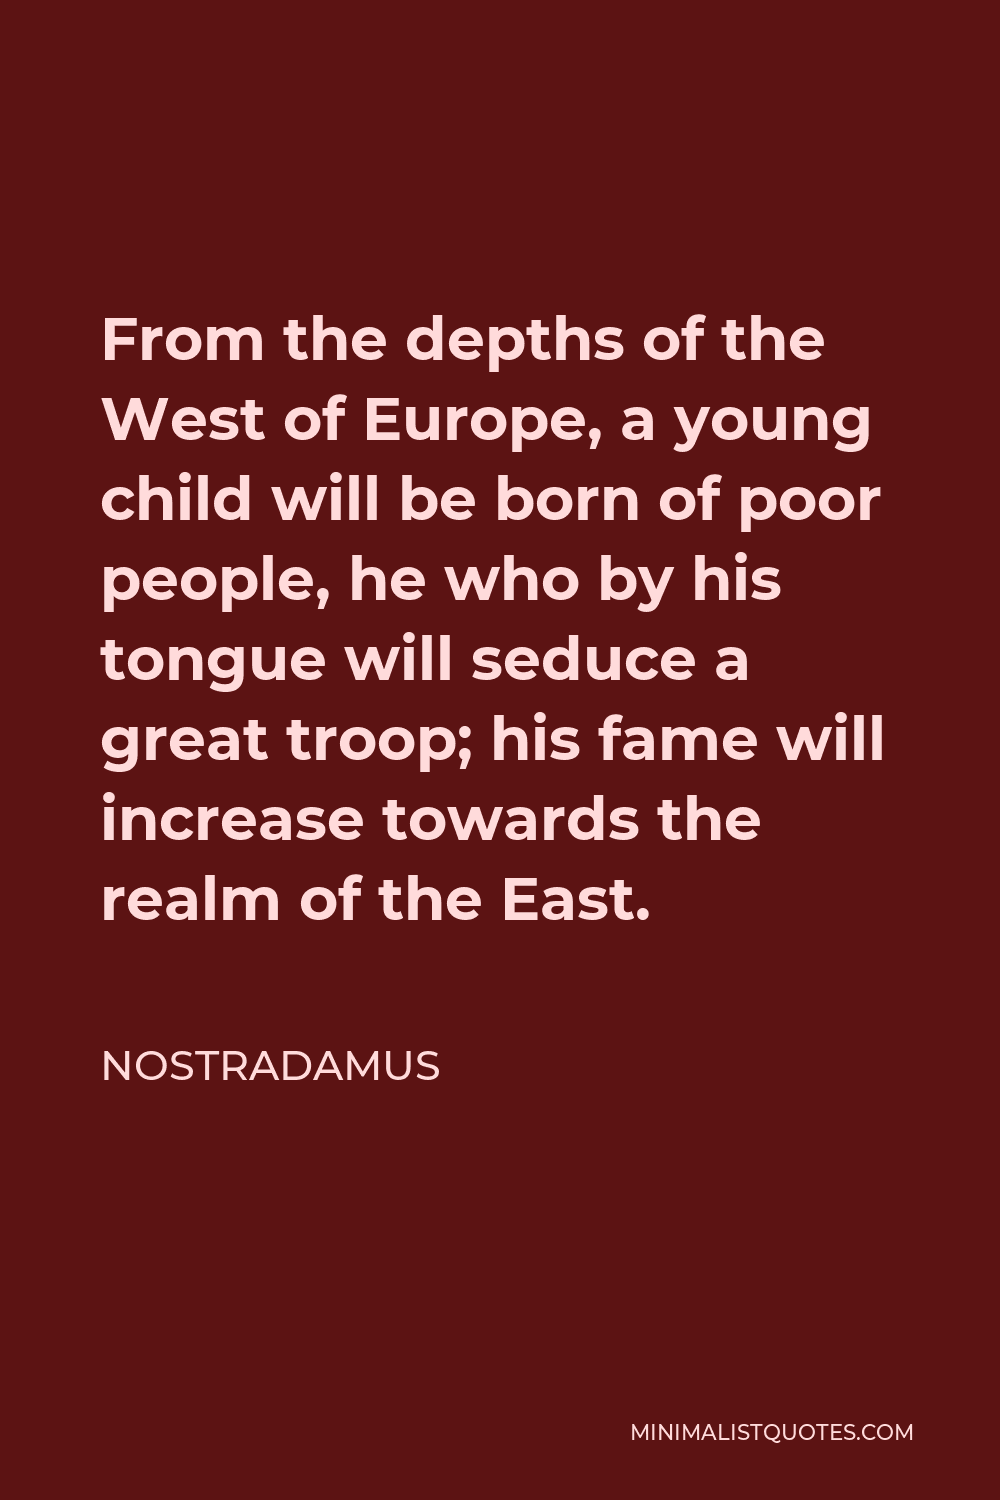 Nostradamus Quote - From the depths of the West of Europe, a young child will be born of poor people, he who by his tongue will seduce a great troop; his fame will increase towards the realm of the East.